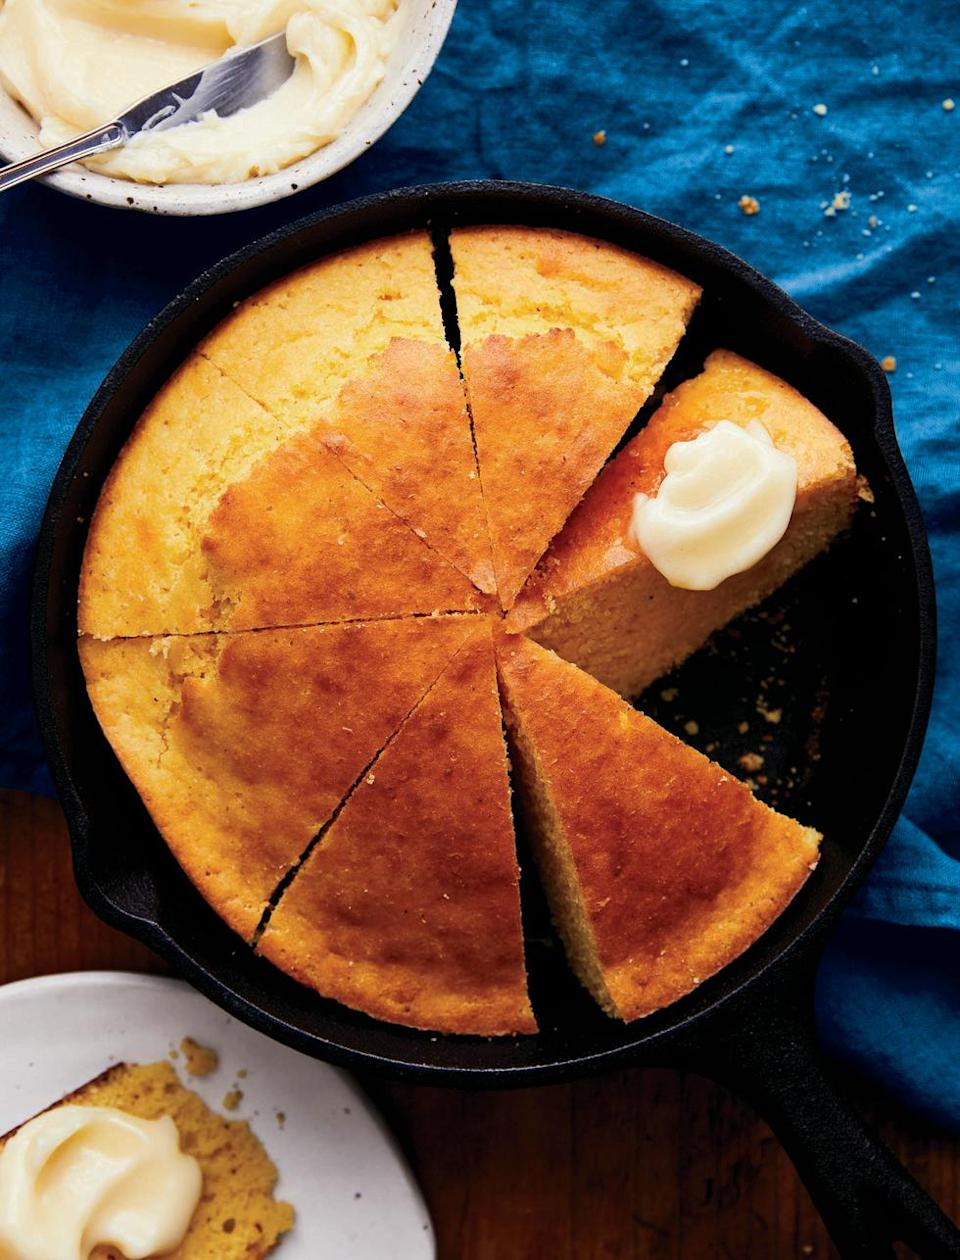 """<p>No good country Thanksgiving is complete without a slice of skillet cornbread.</p><p><strong><a href=""""https://www.countryliving.com/food-drinks/a34276804/skillet-cornbread-with-honey-butter/"""" rel=""""nofollow noopener"""" target=""""_blank"""" data-ylk=""""slk:Get the recipe"""" class=""""link rapid-noclick-resp"""">Get the recipe</a>.</strong> </p>"""